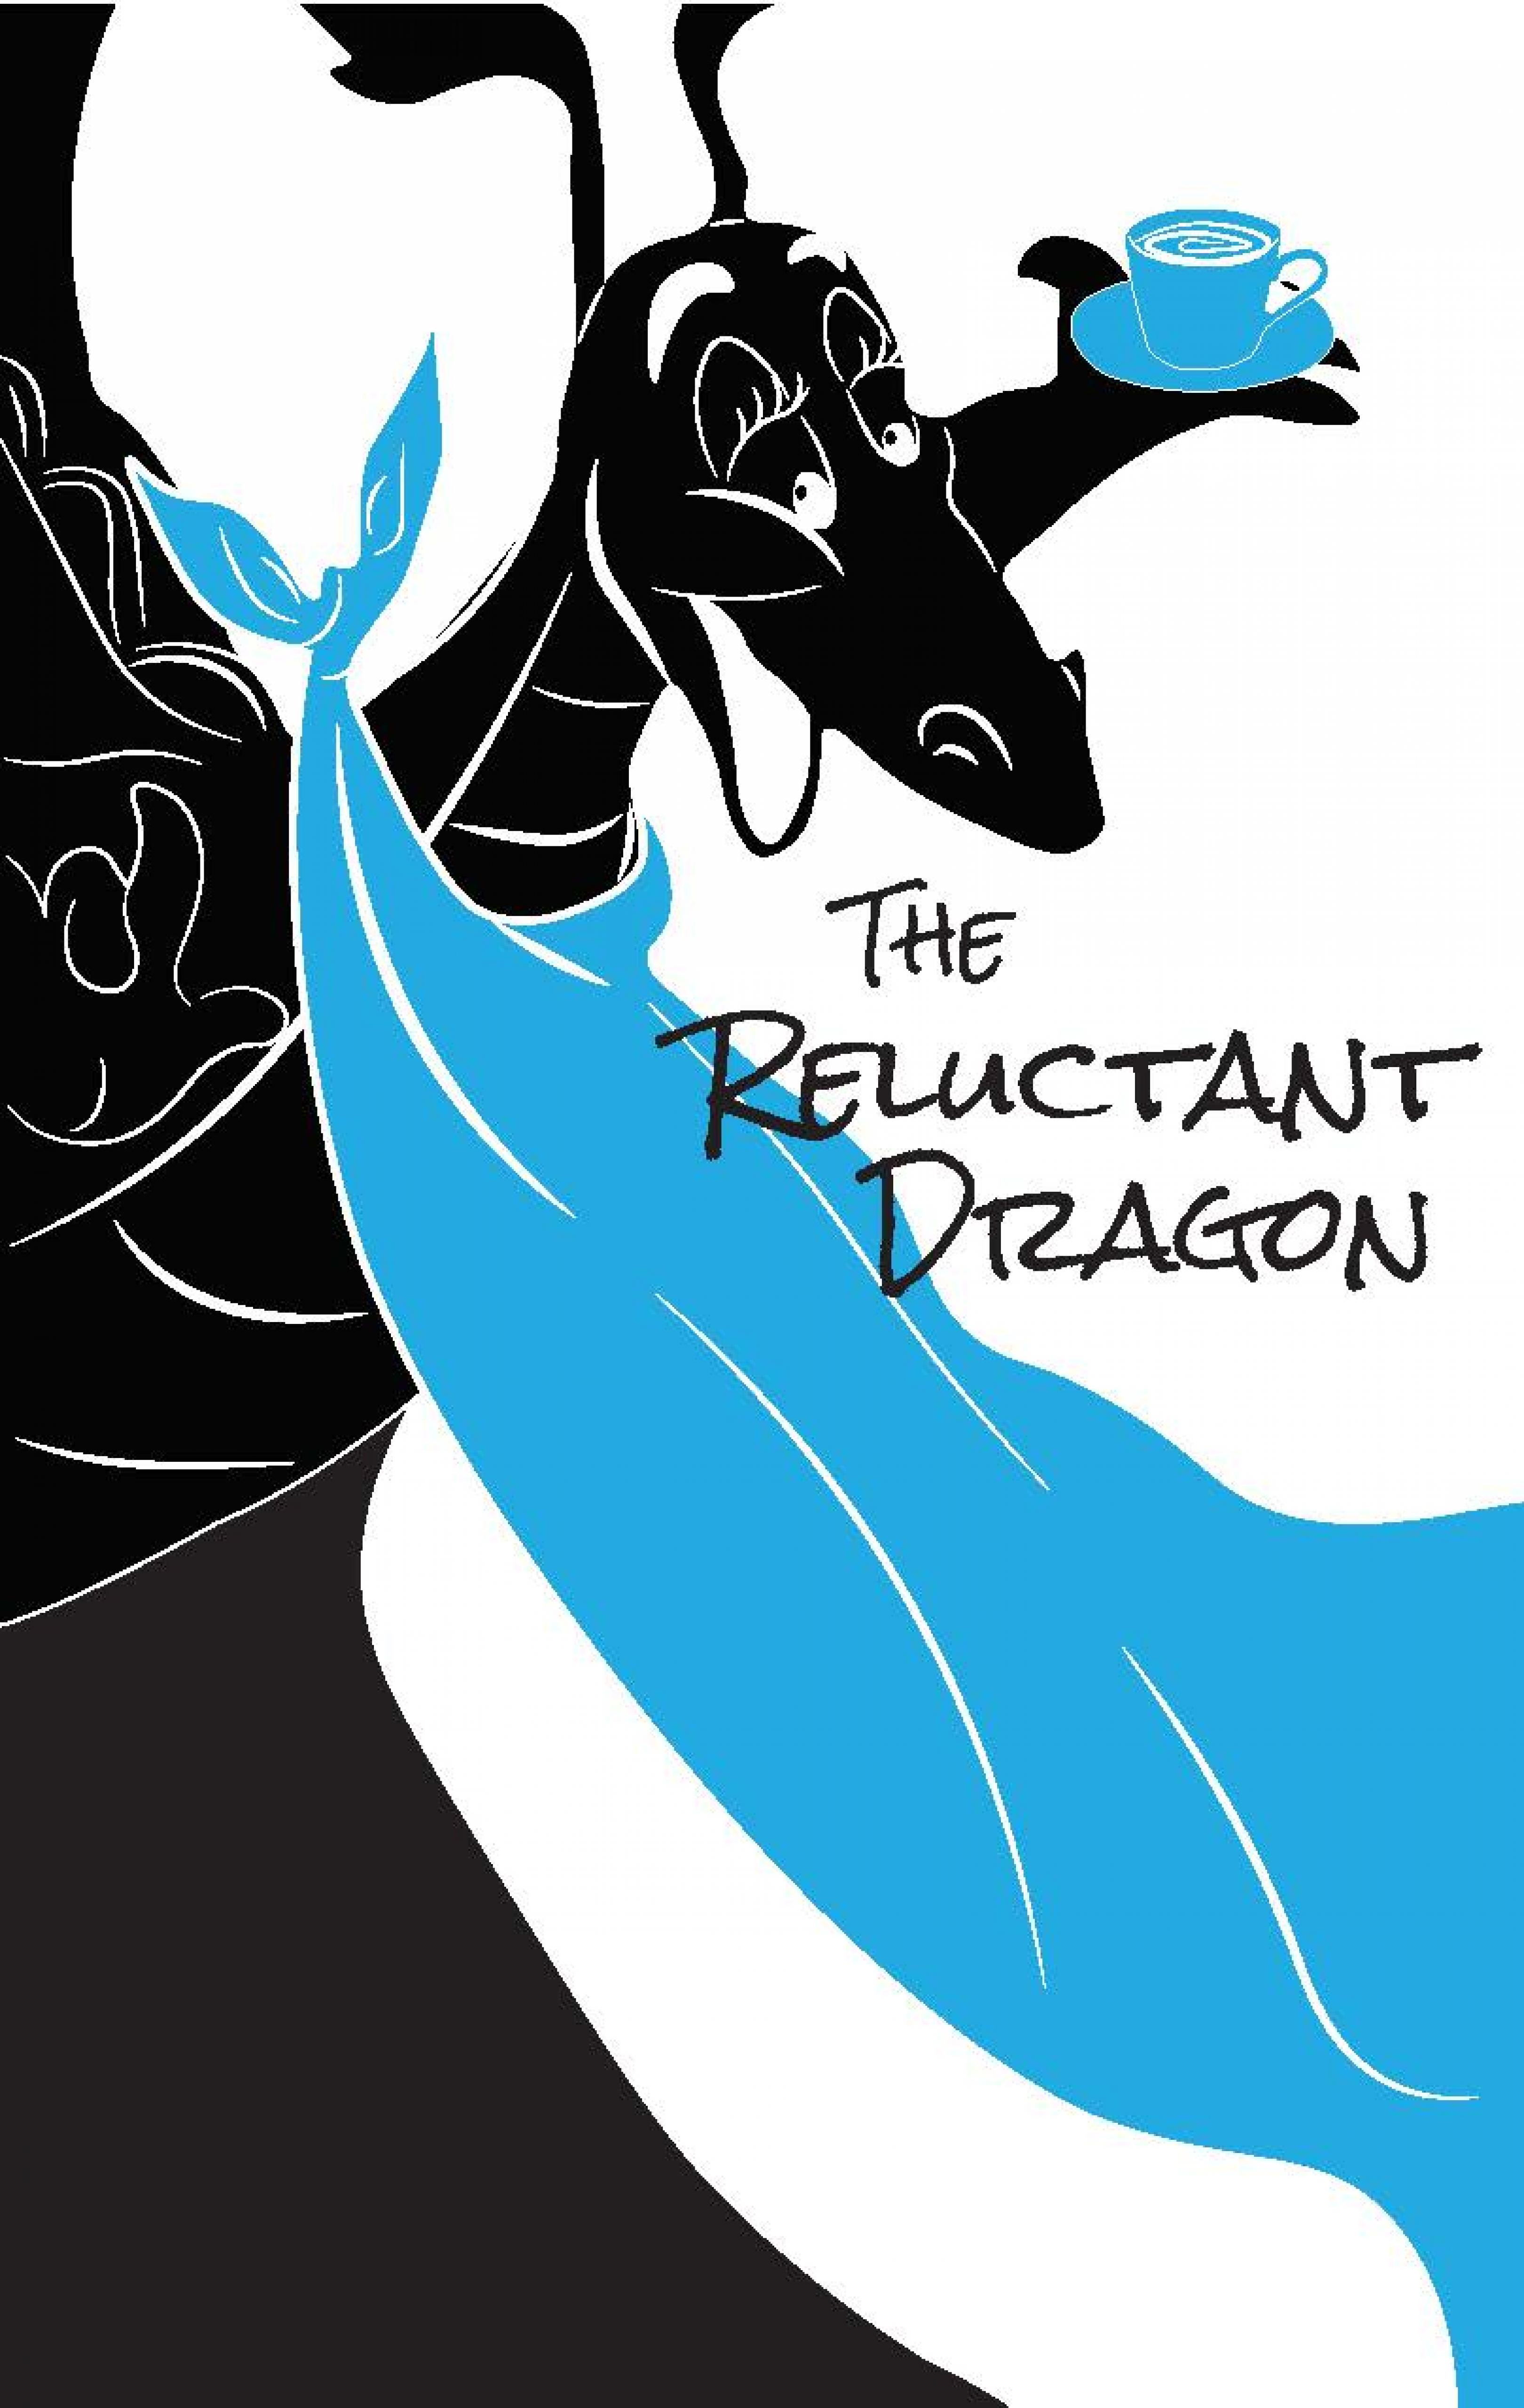 The Reluctant Dragon banner image